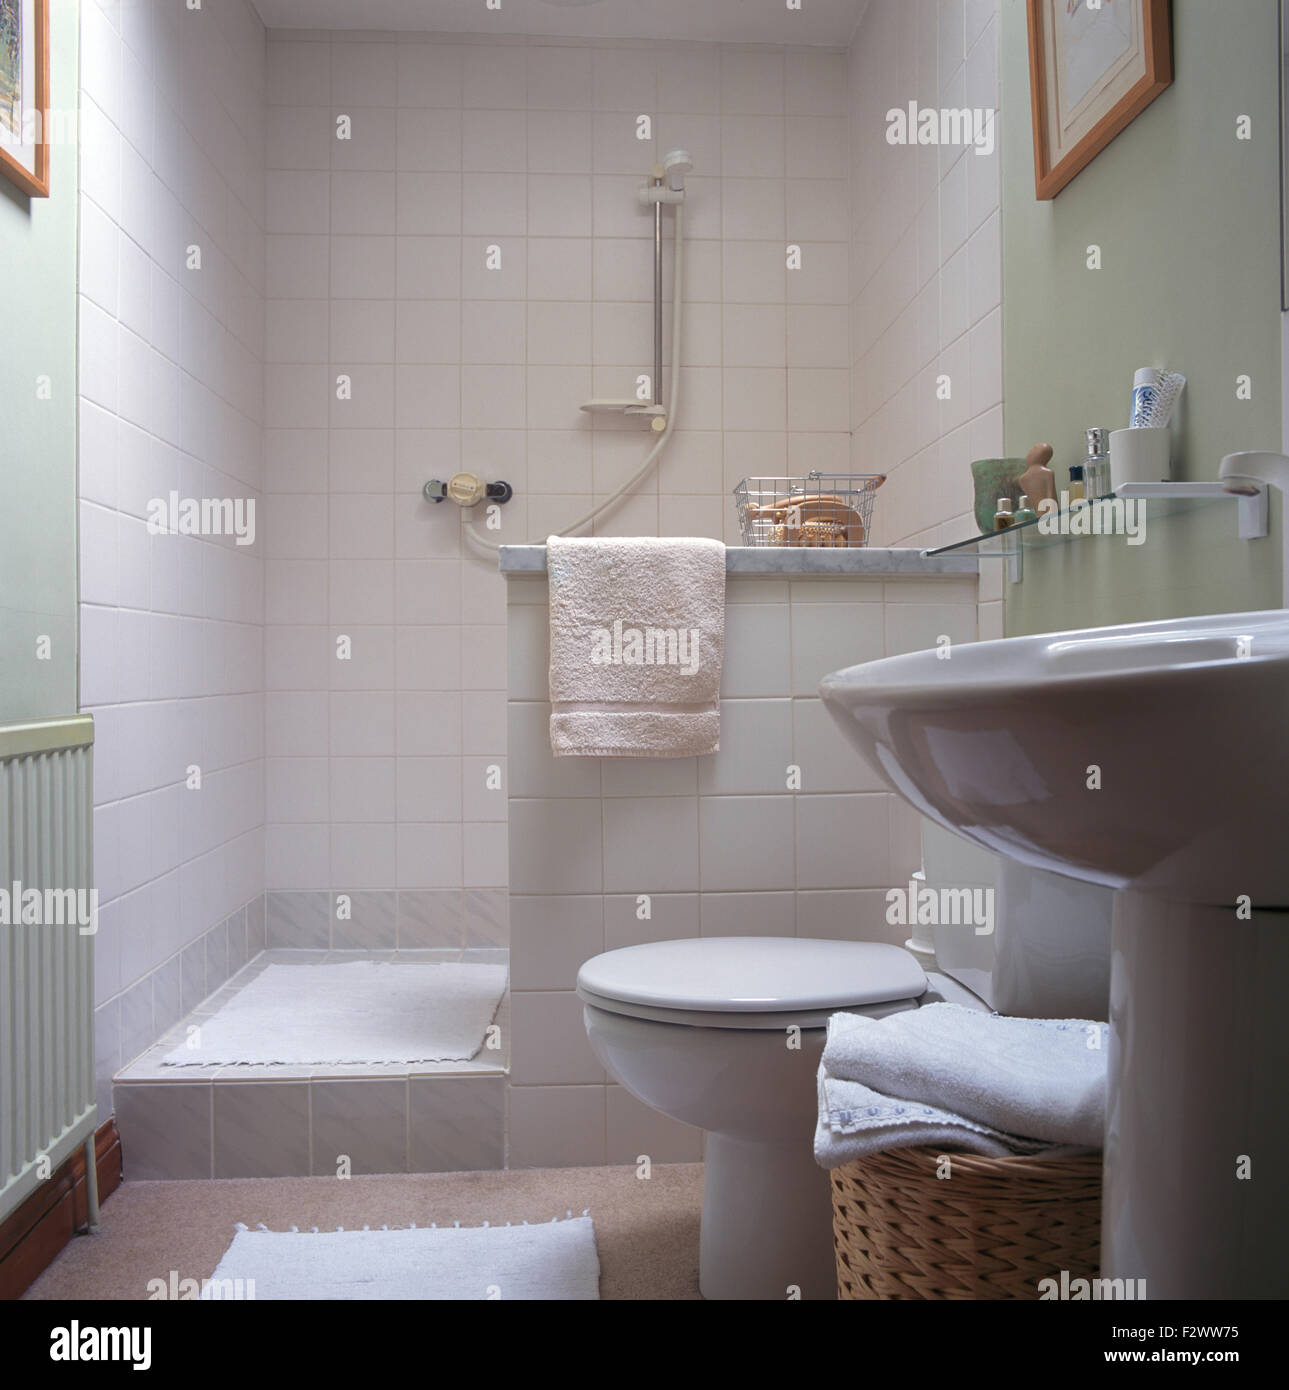 Walk In White Tiled Shower In Pale Green Bathroom With Pedestal Basin